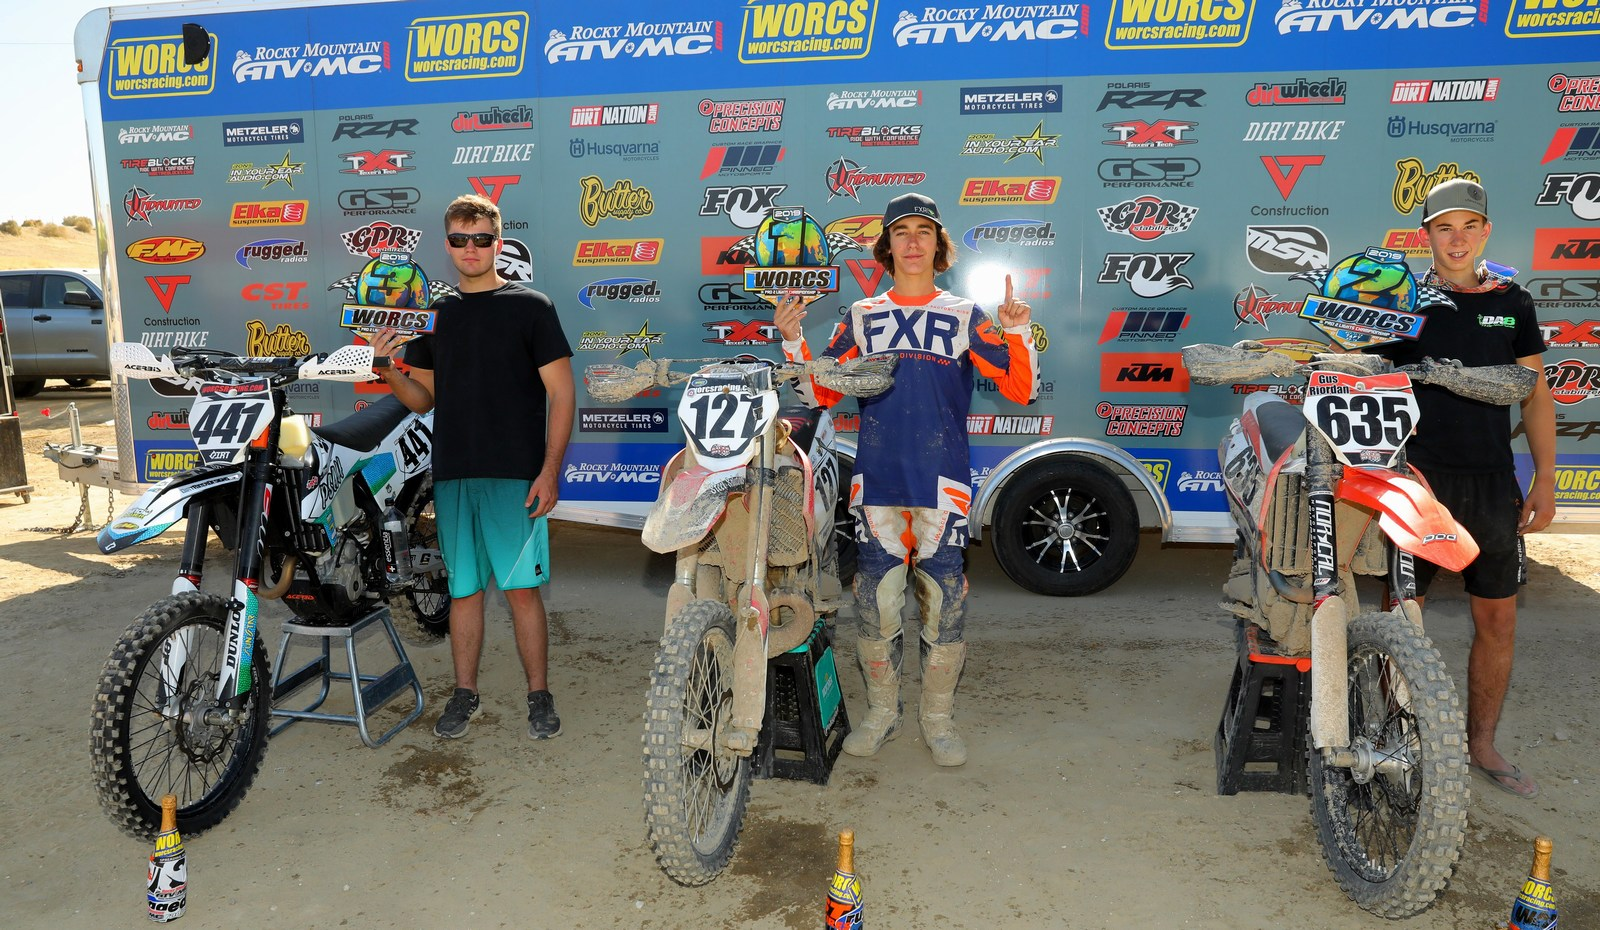 2019-10-podium-pro2-lights-bike-worcs-racing